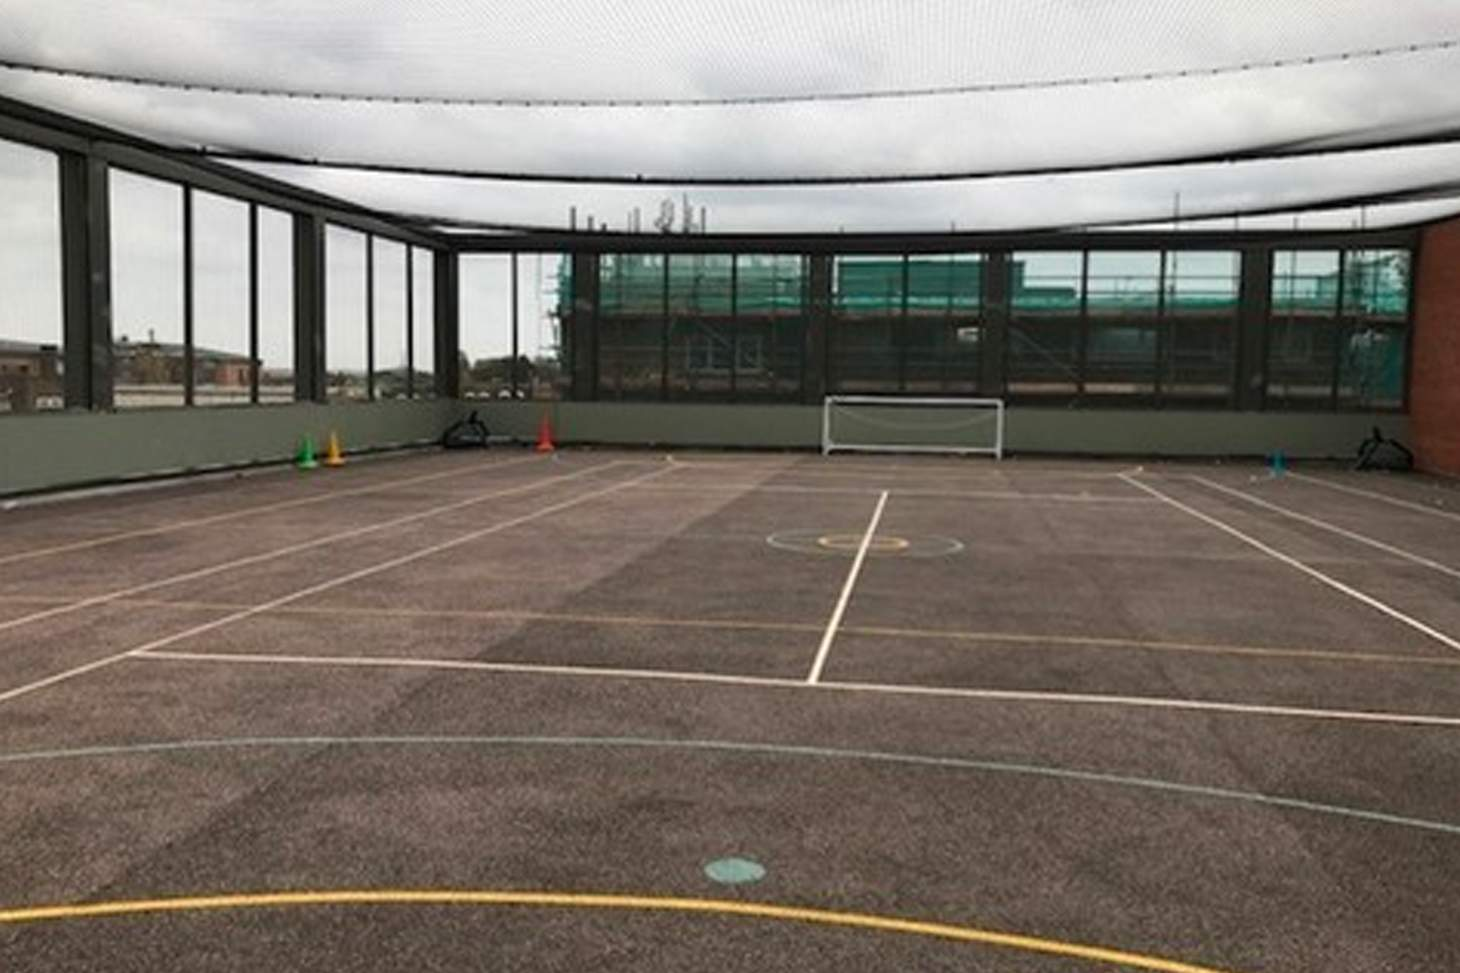 Our Lady's Convent High School Court | Hard (macadam) tennis court